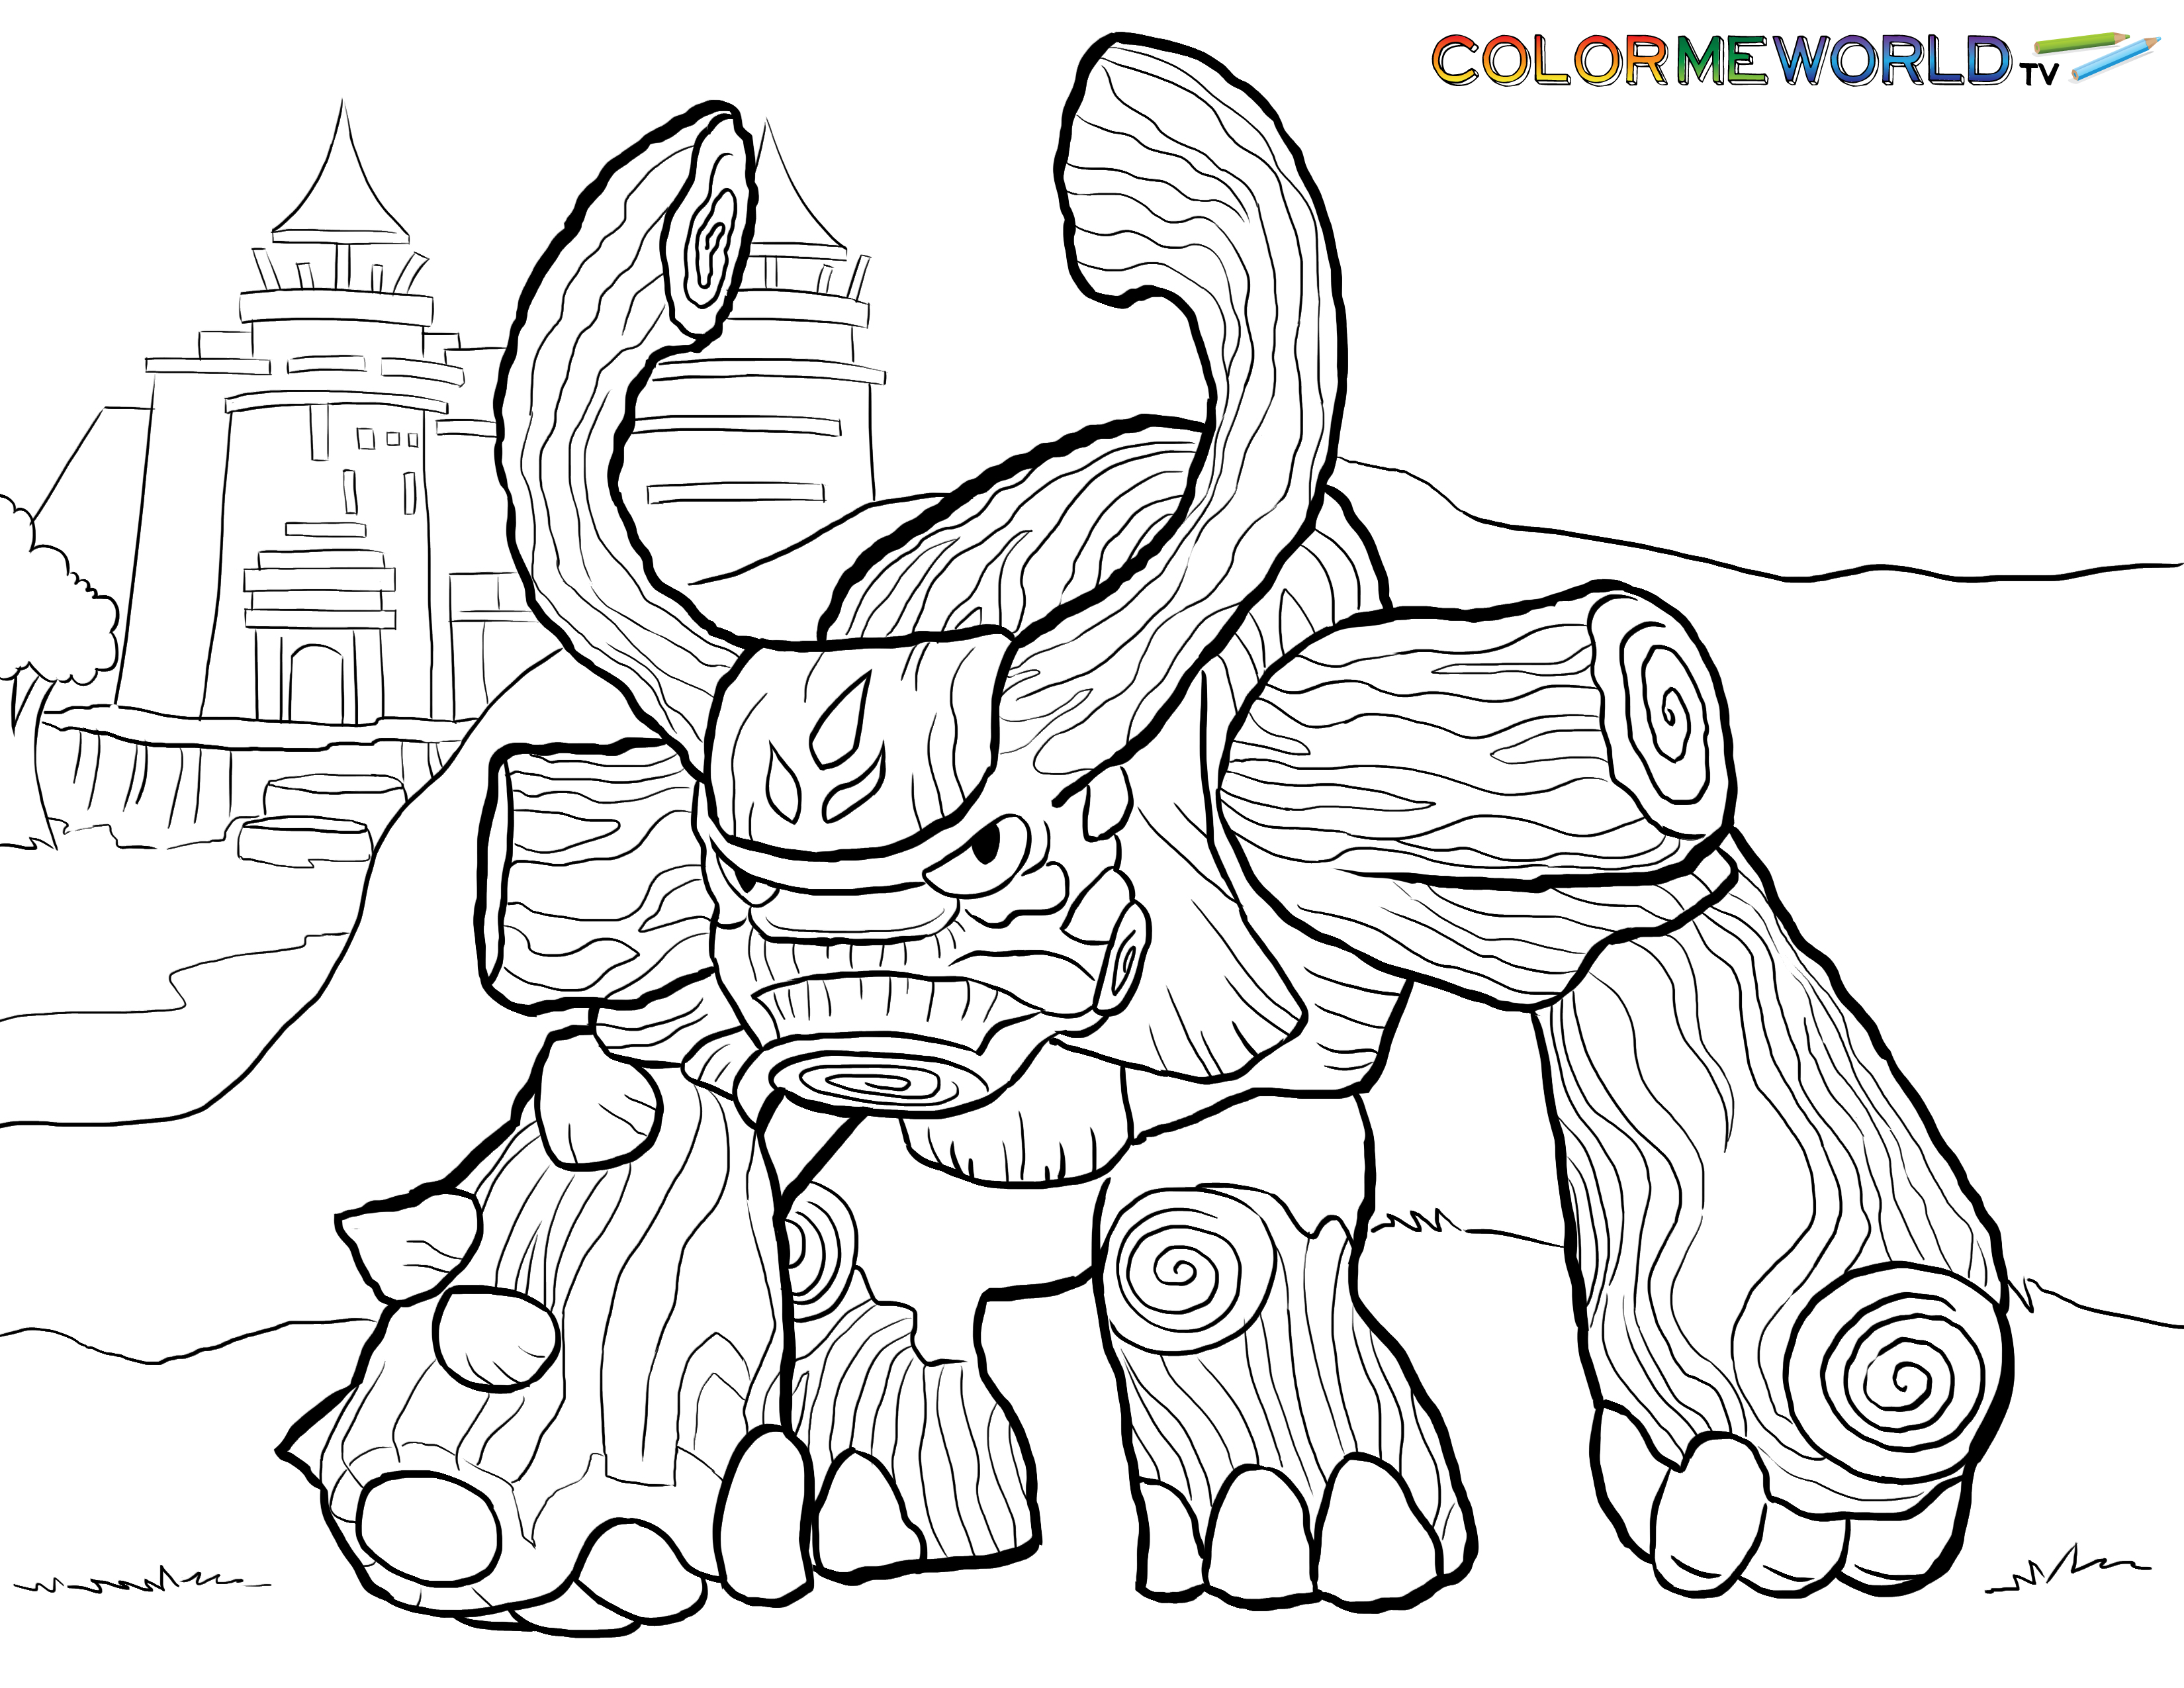 Tree Rex Coloring Page | Skylander\'s Coloring Pages | Pinterest ...